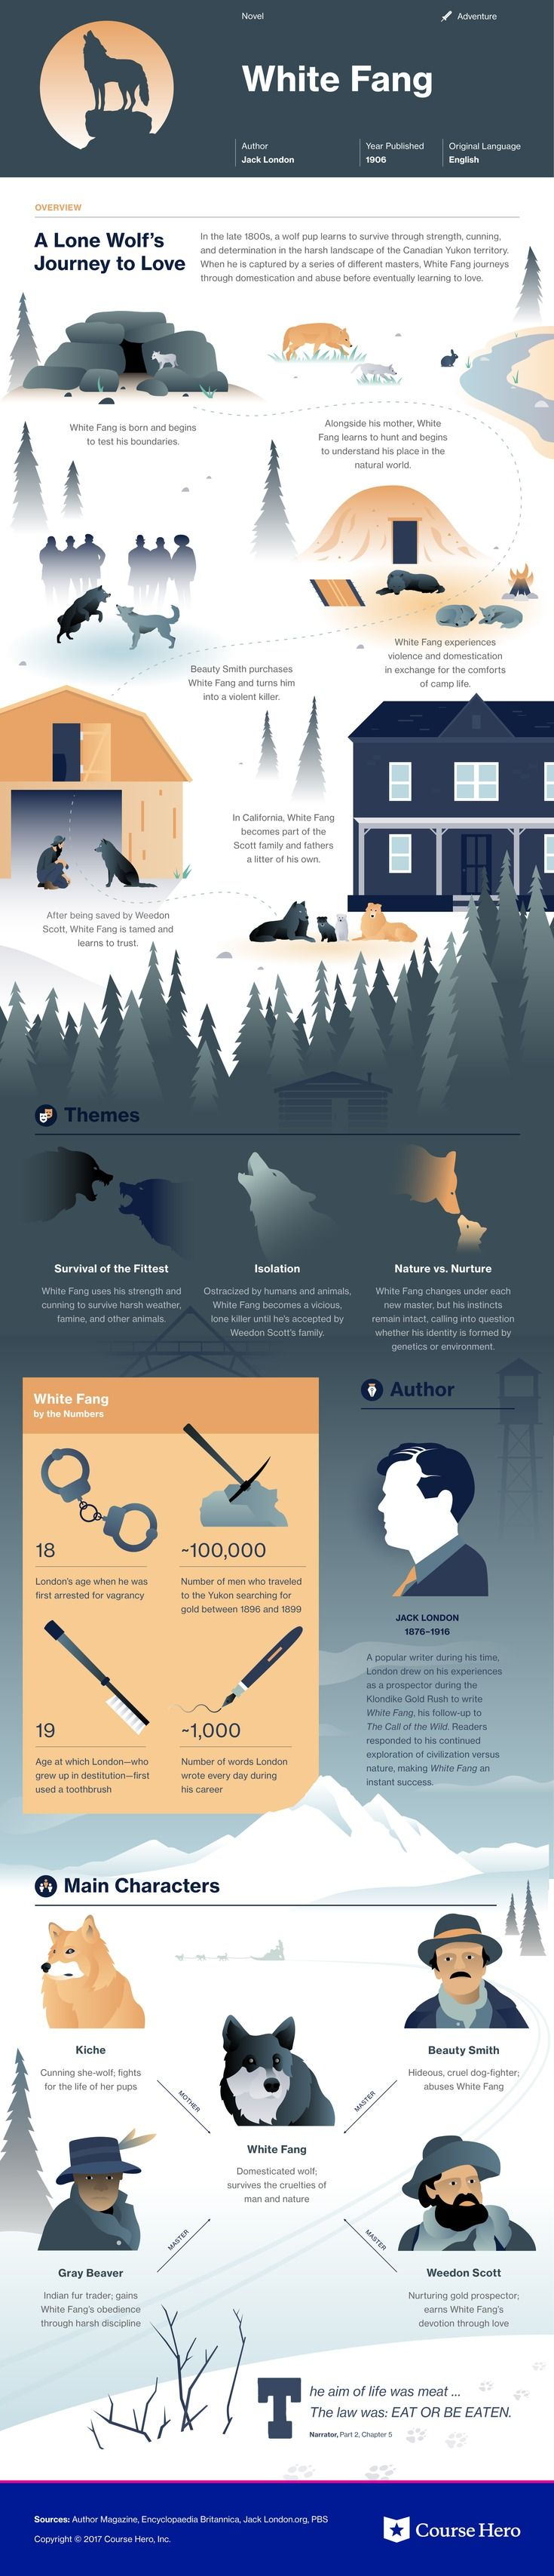 This CourseHero infographic on White Fang is